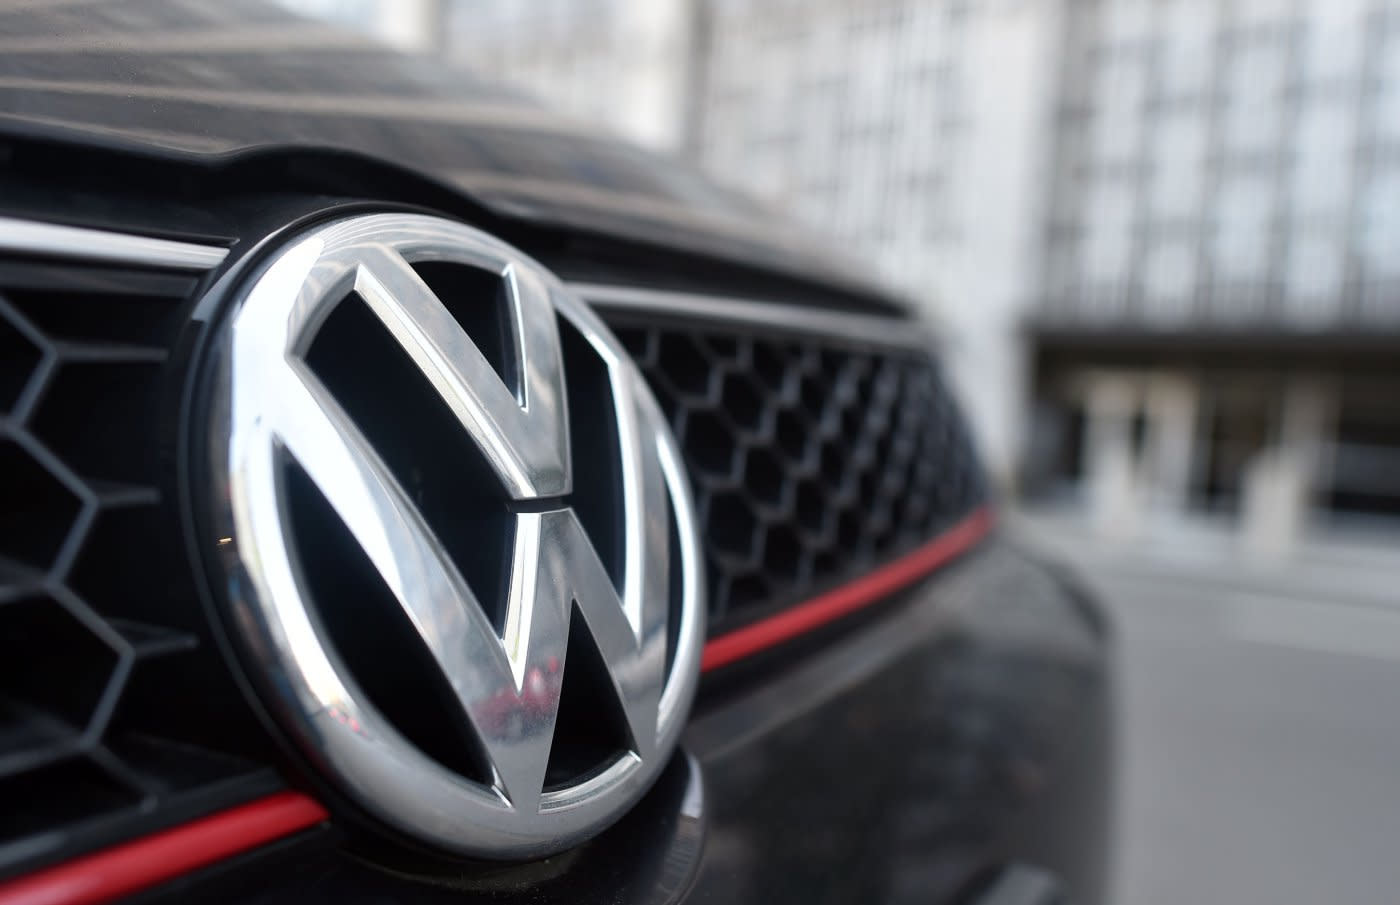 AP: VW will shell out $10 2 billion to settle emissions claims